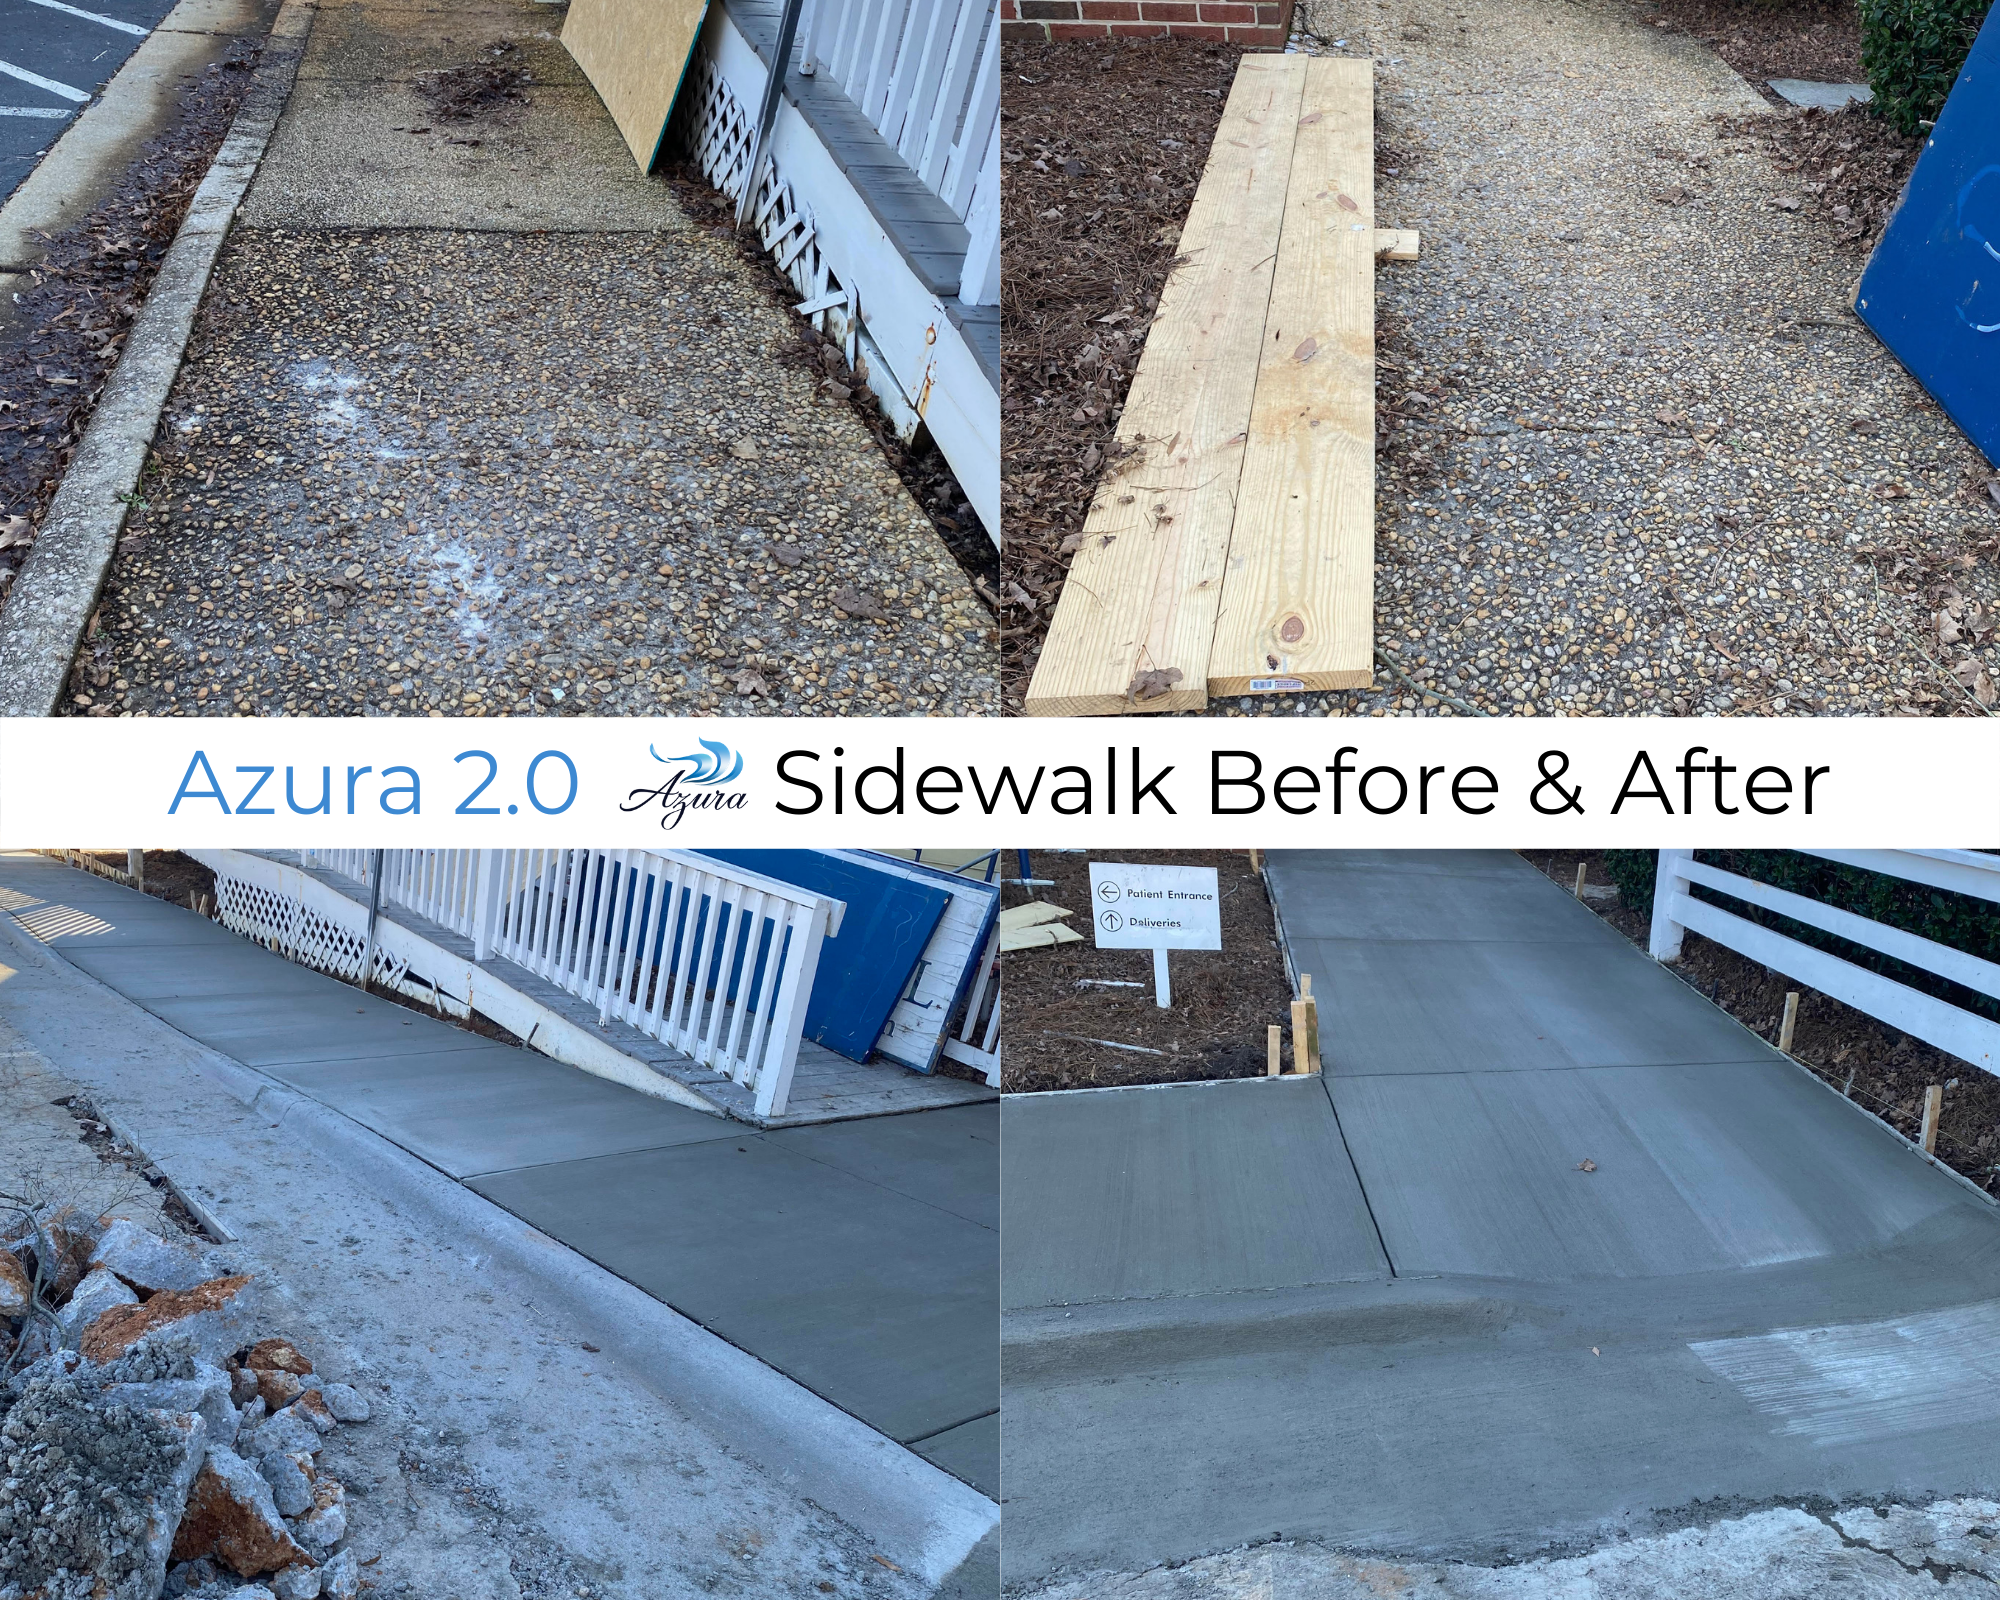 Azura New Location Sidewalk Before and After